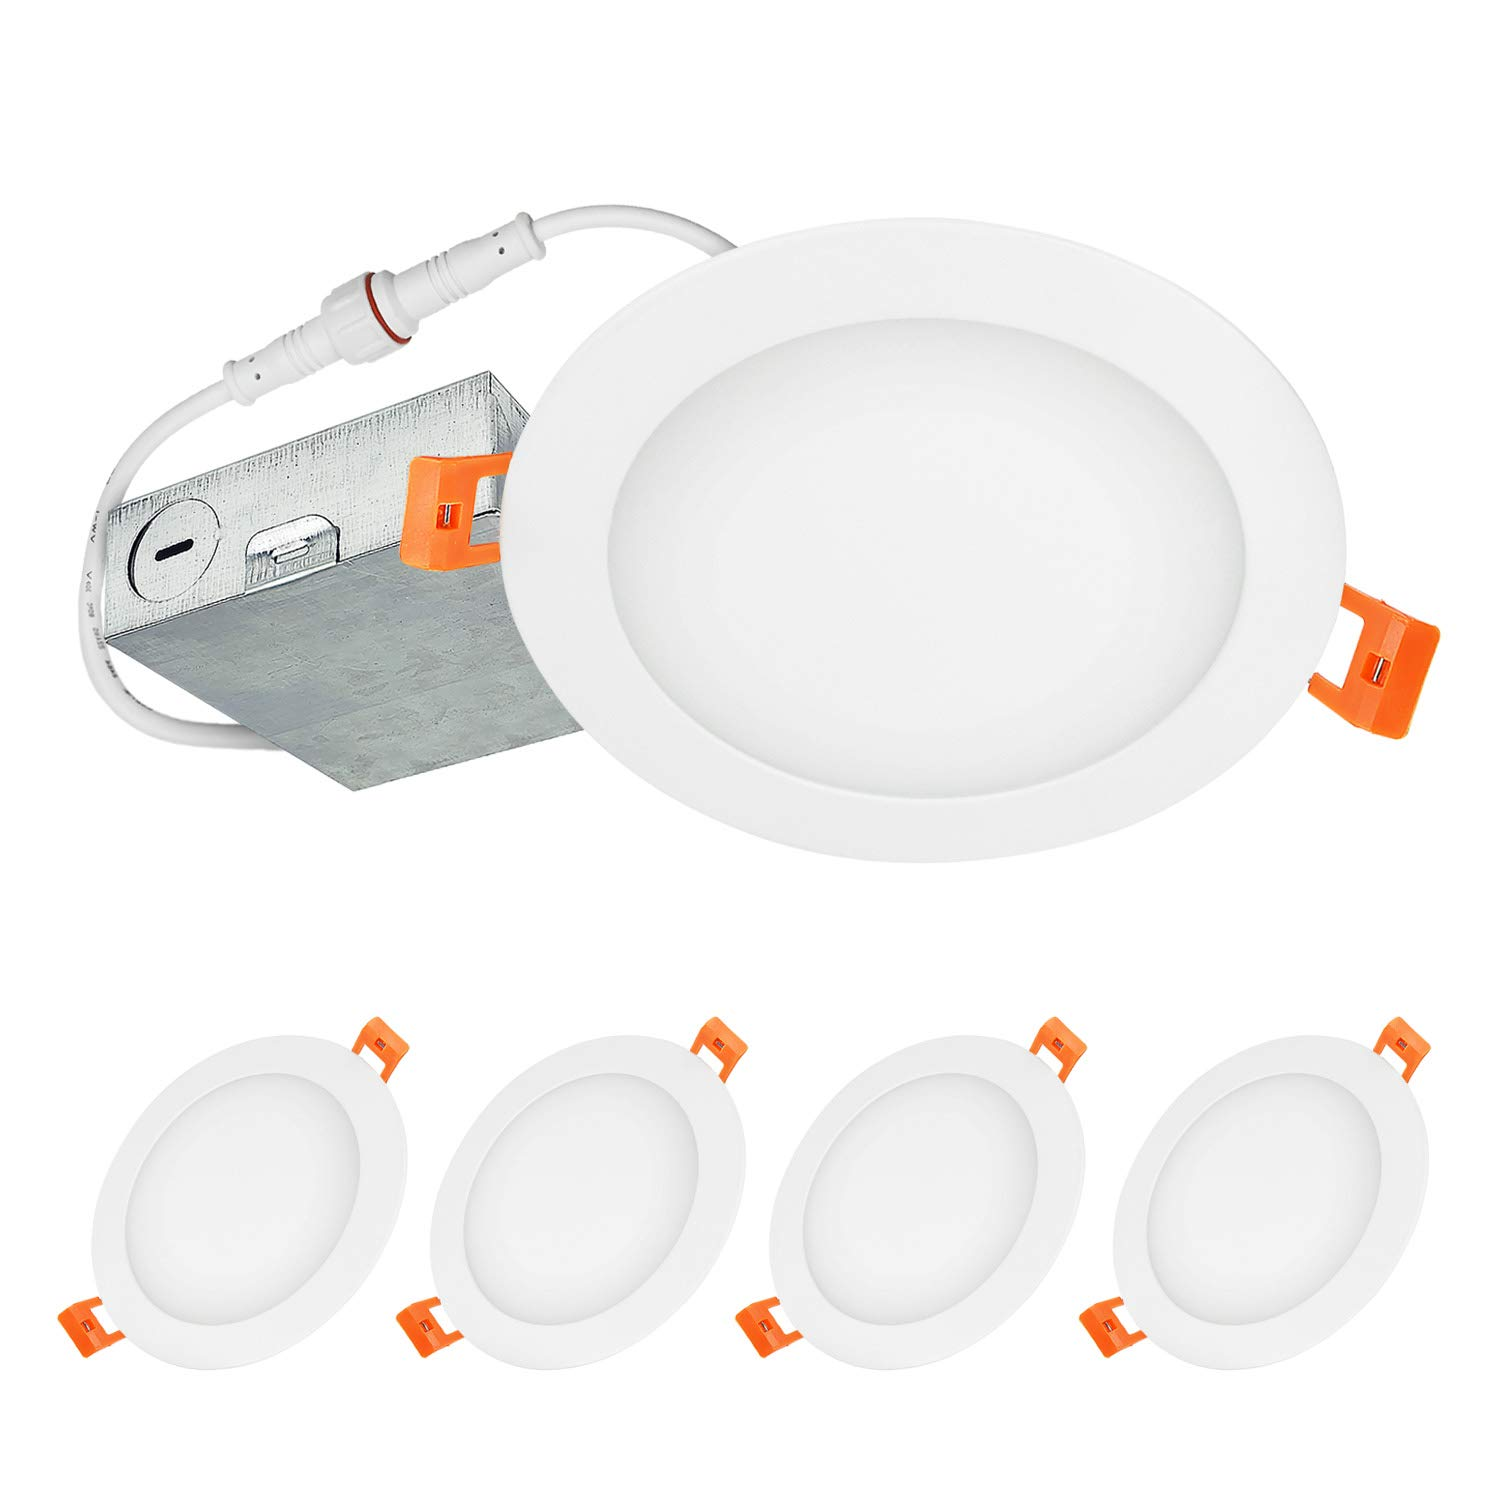 LUXTER (4 Pack) 6 inch Ultra-Thin Round LED Recessed Panel Light with Junction Box, Dimmable, IC Rated, 15W (80 Watt Repl.) 5000K Daylight 1125 Lm. No Can Needed ETL & Energy Star Listed